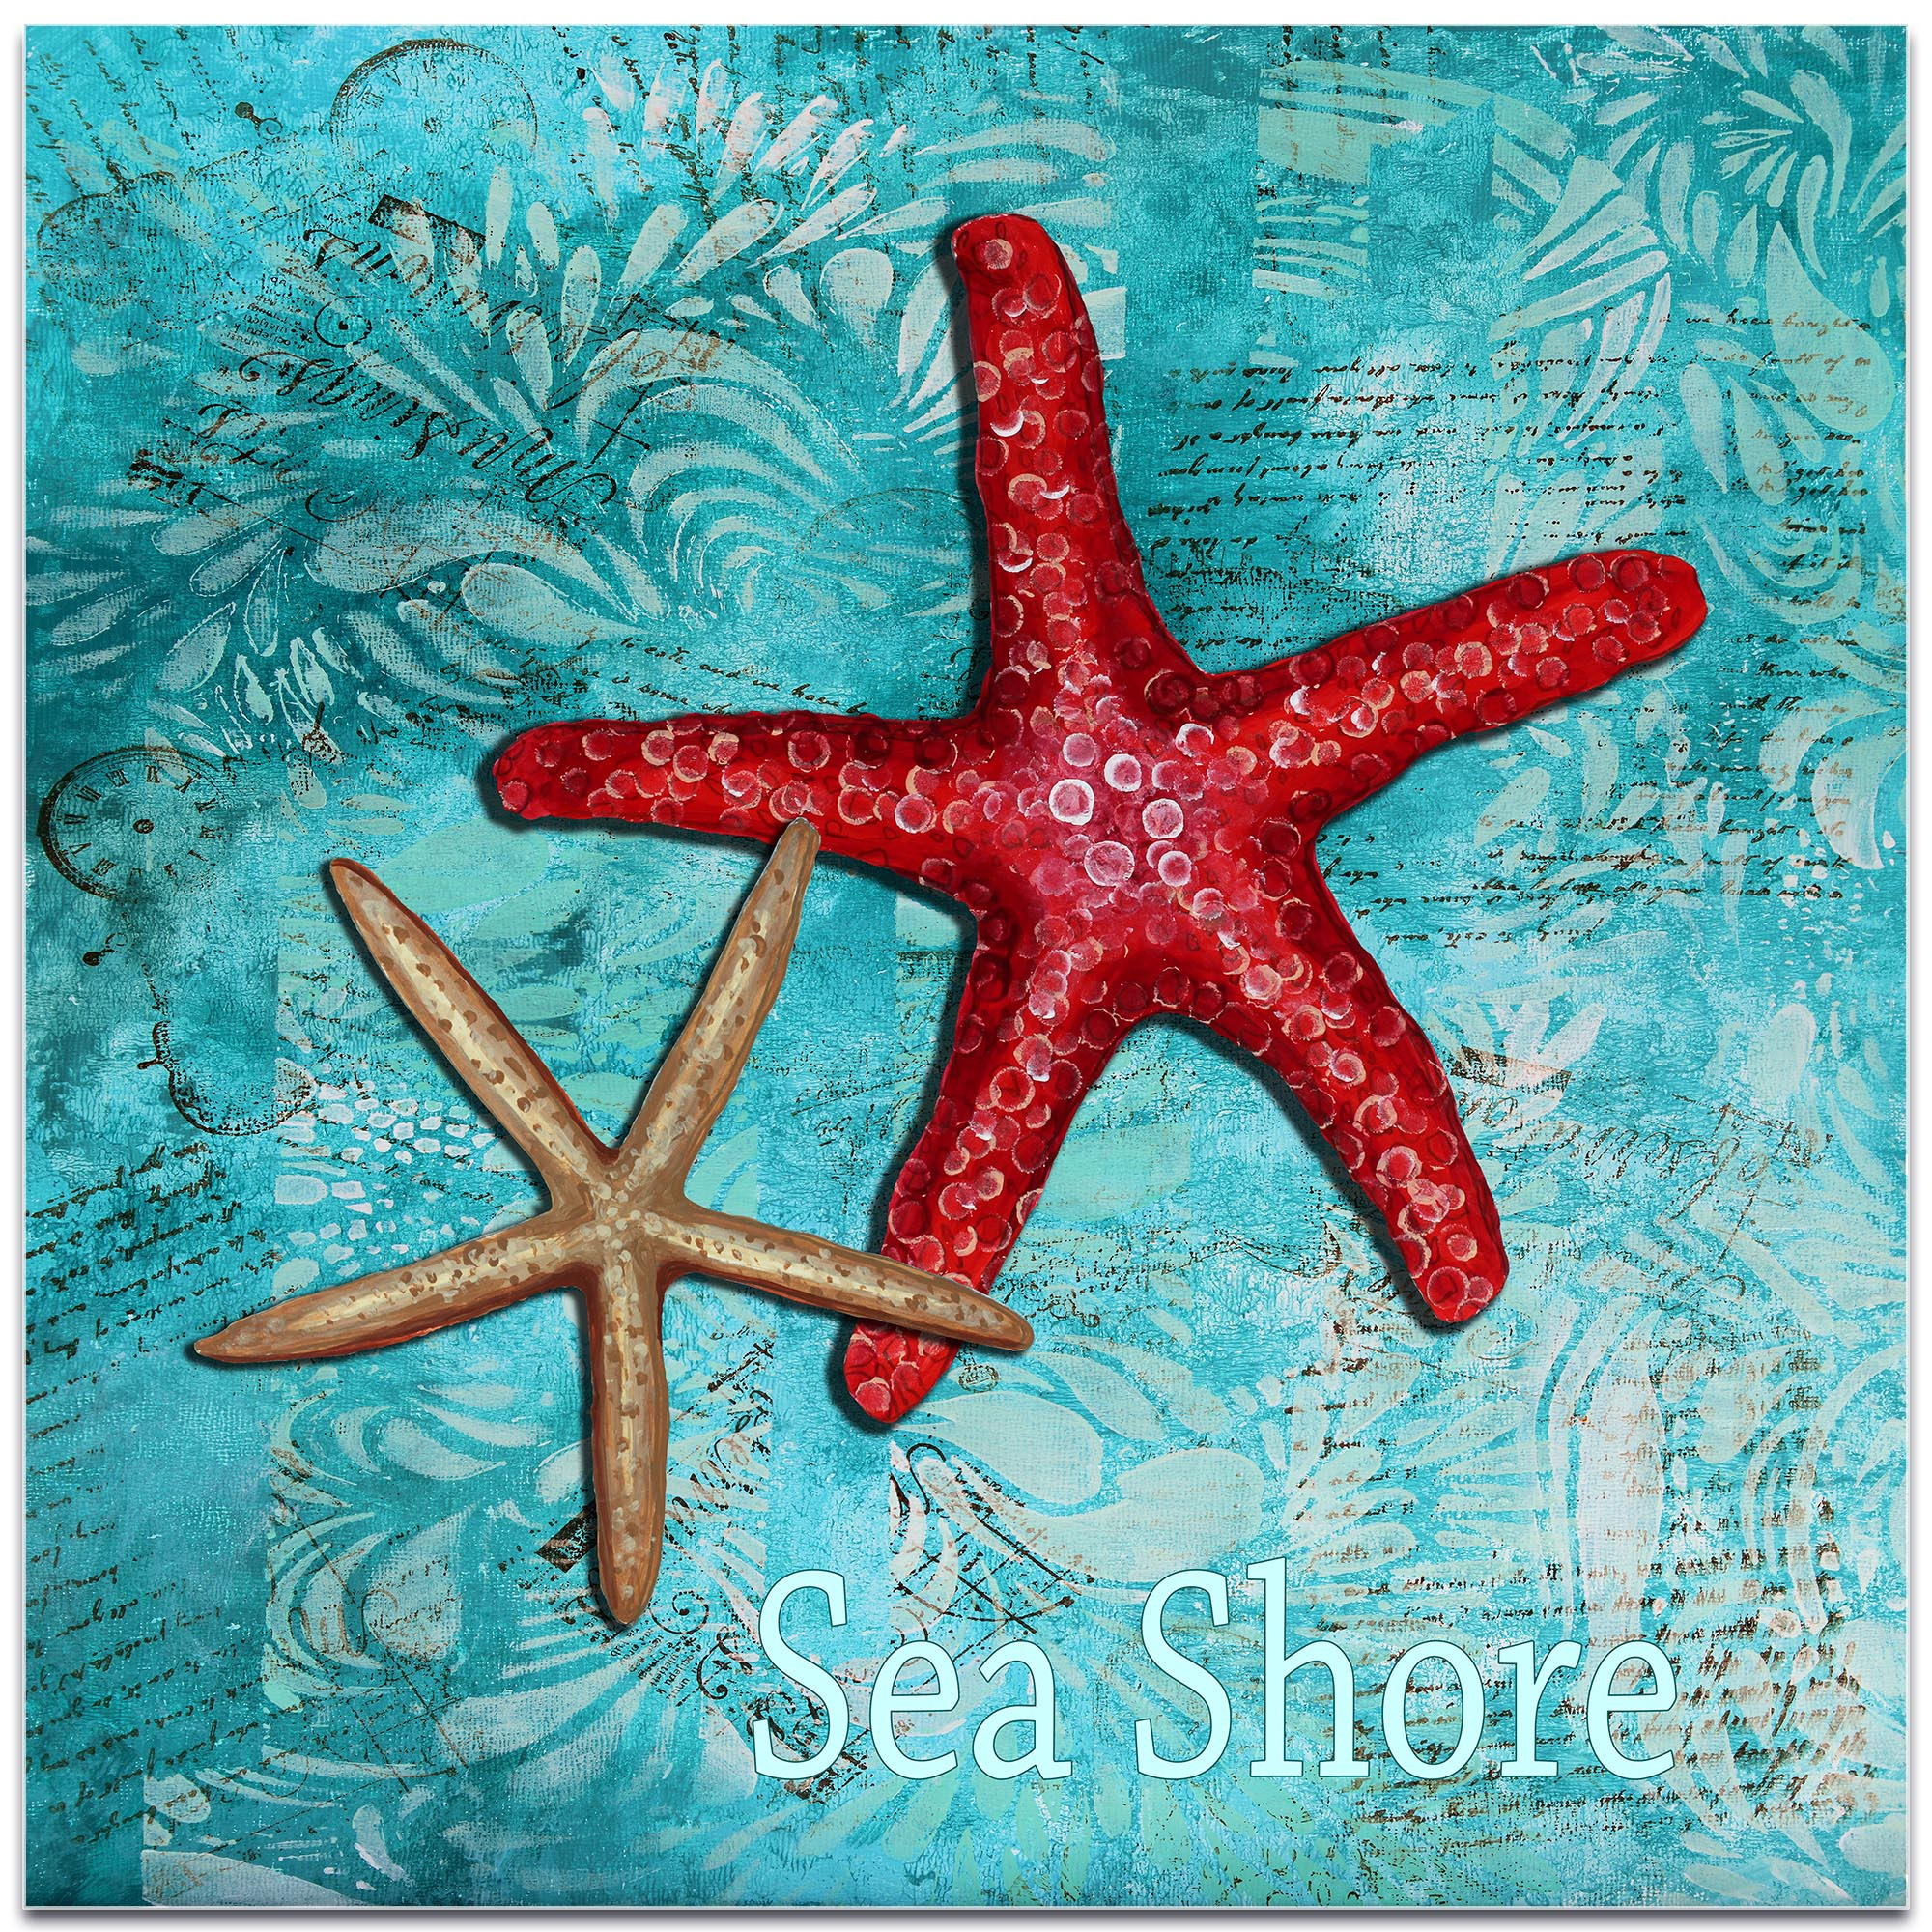 Starfish Wall Art 'Sea Shore' - Coastal Decor on Metal or Acrylic - Image 2